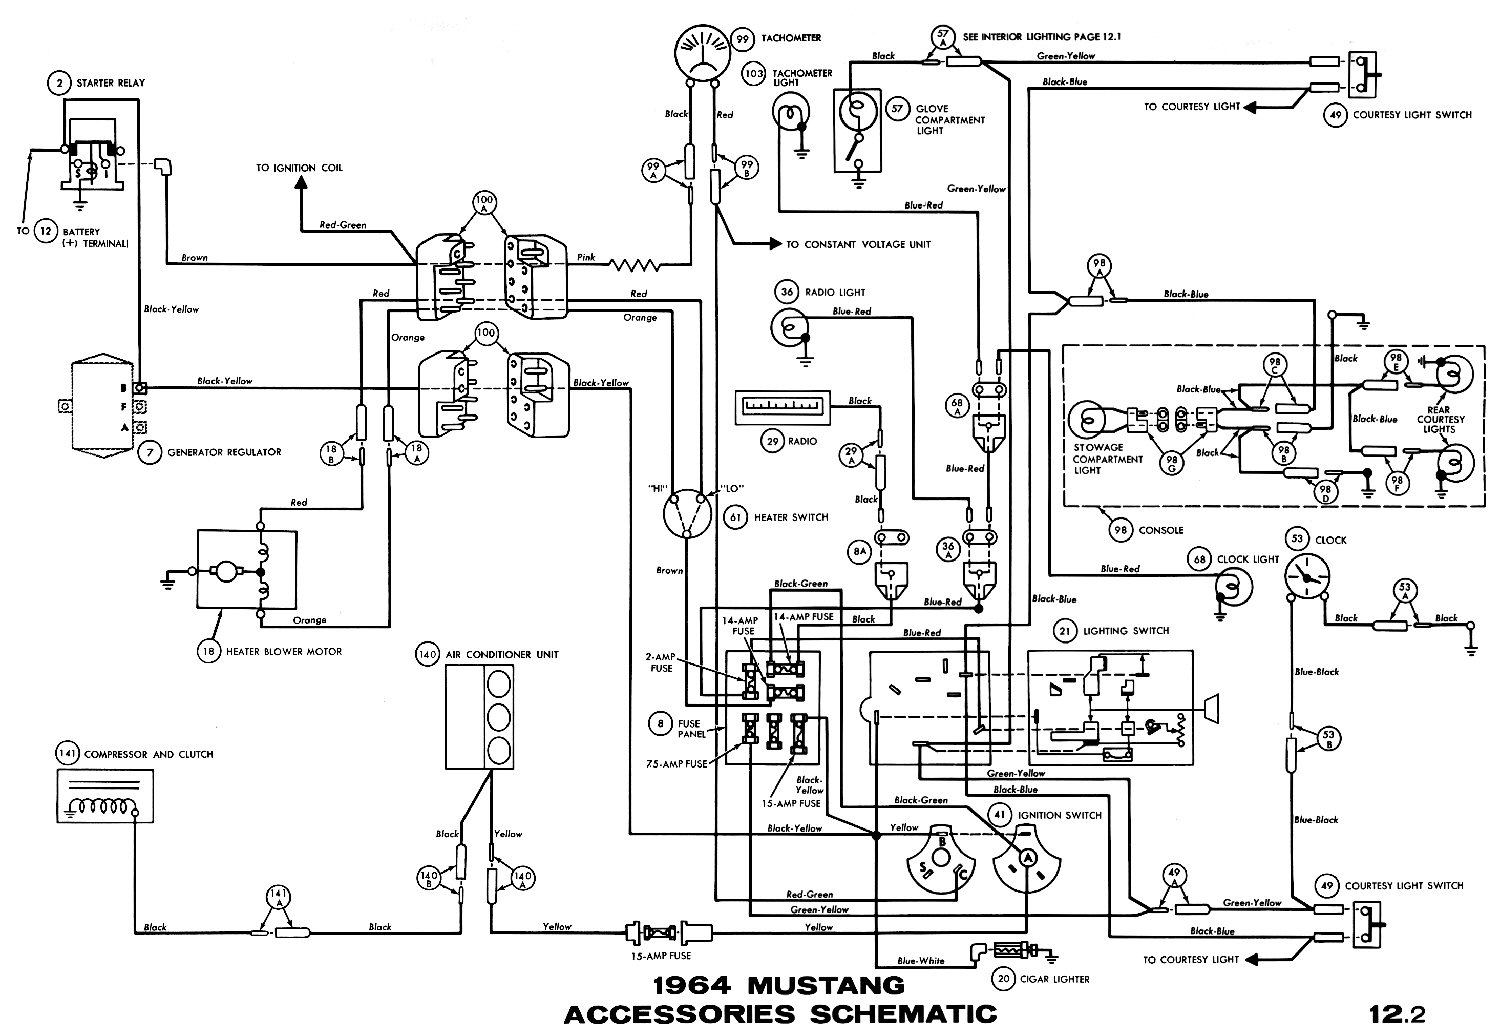 1964m 1964 mustang wiring diagrams average joe restoration 1966 mustang radio wiring diagram at bakdesigns.co